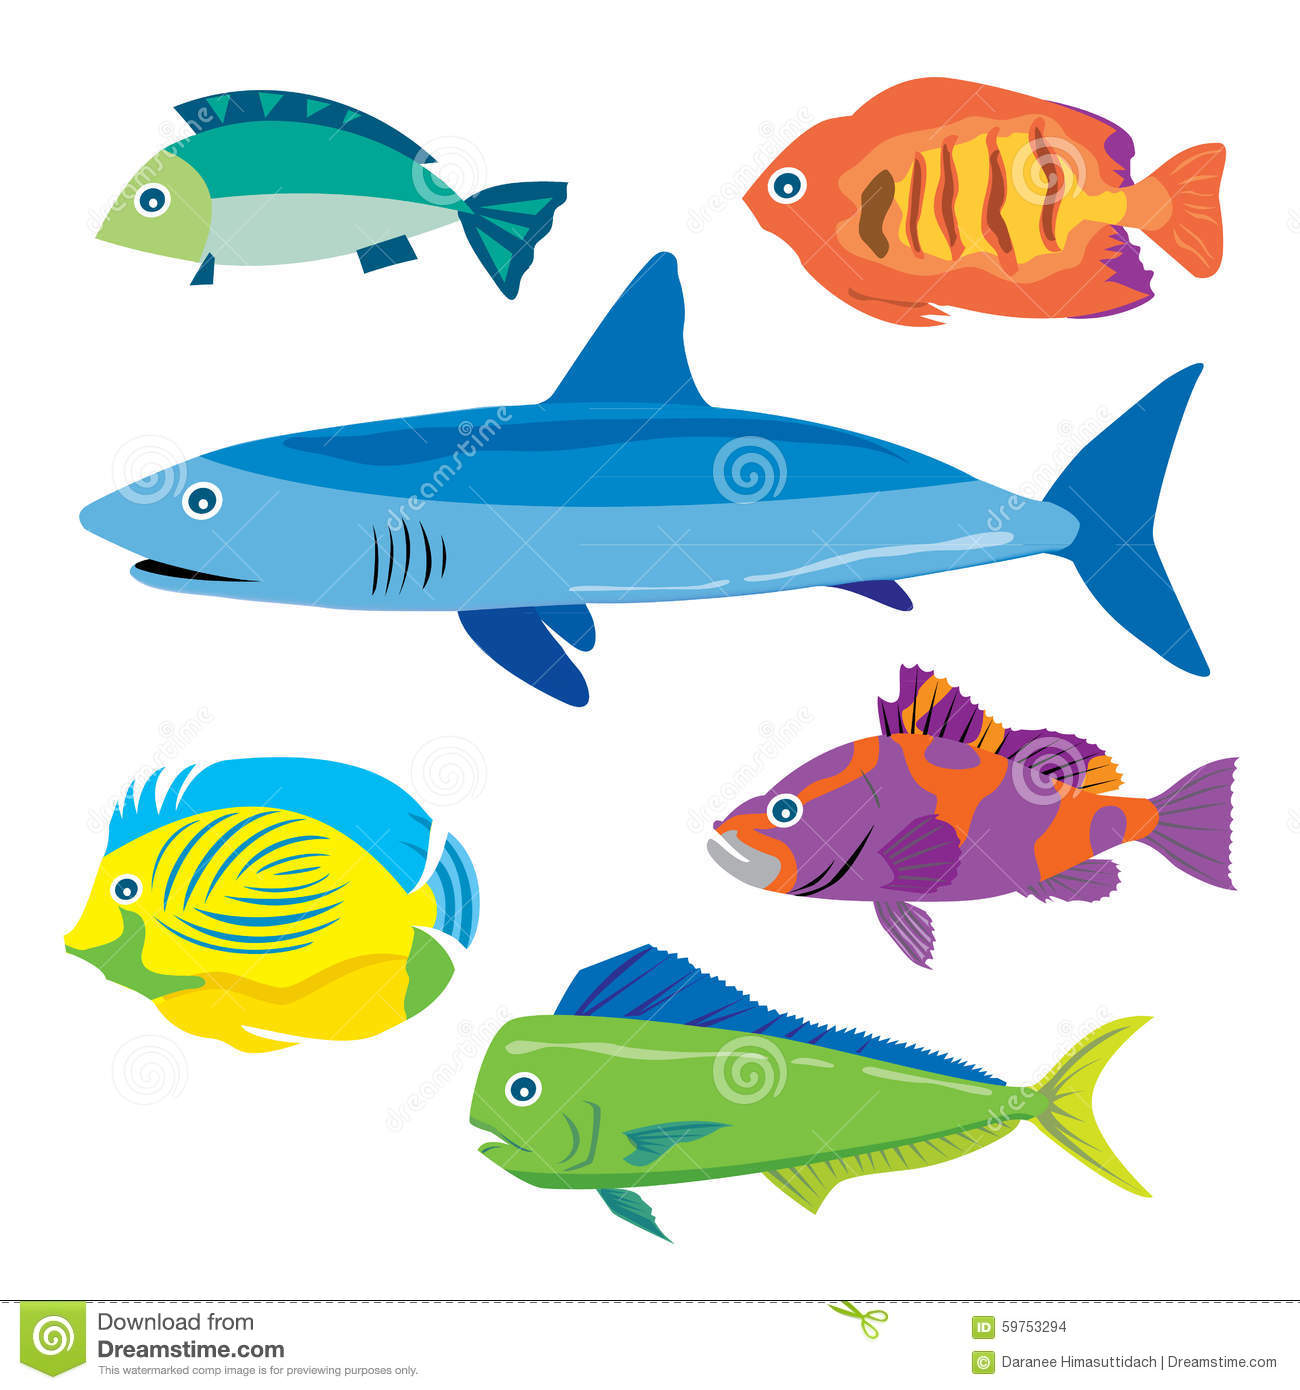 Tropical fish water animal vector cartoon